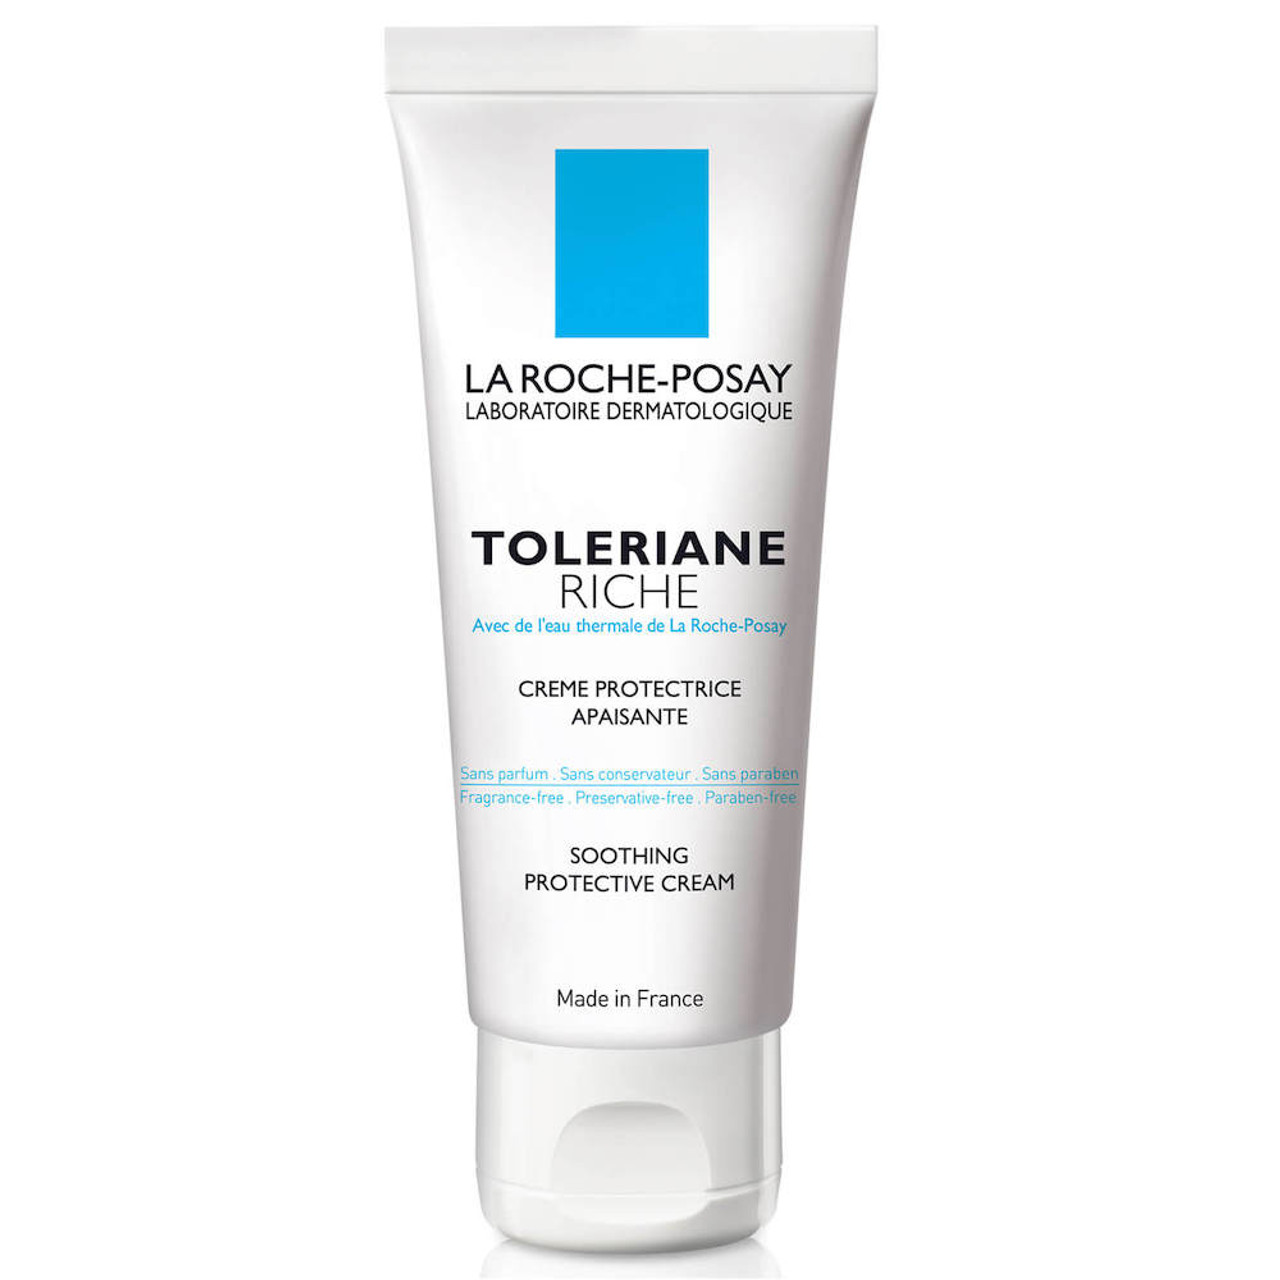 La Roche Posay Toleriane Riche Soothing Protective Cream For Very Dry Skin (discontinued) BeautifiedYou.com